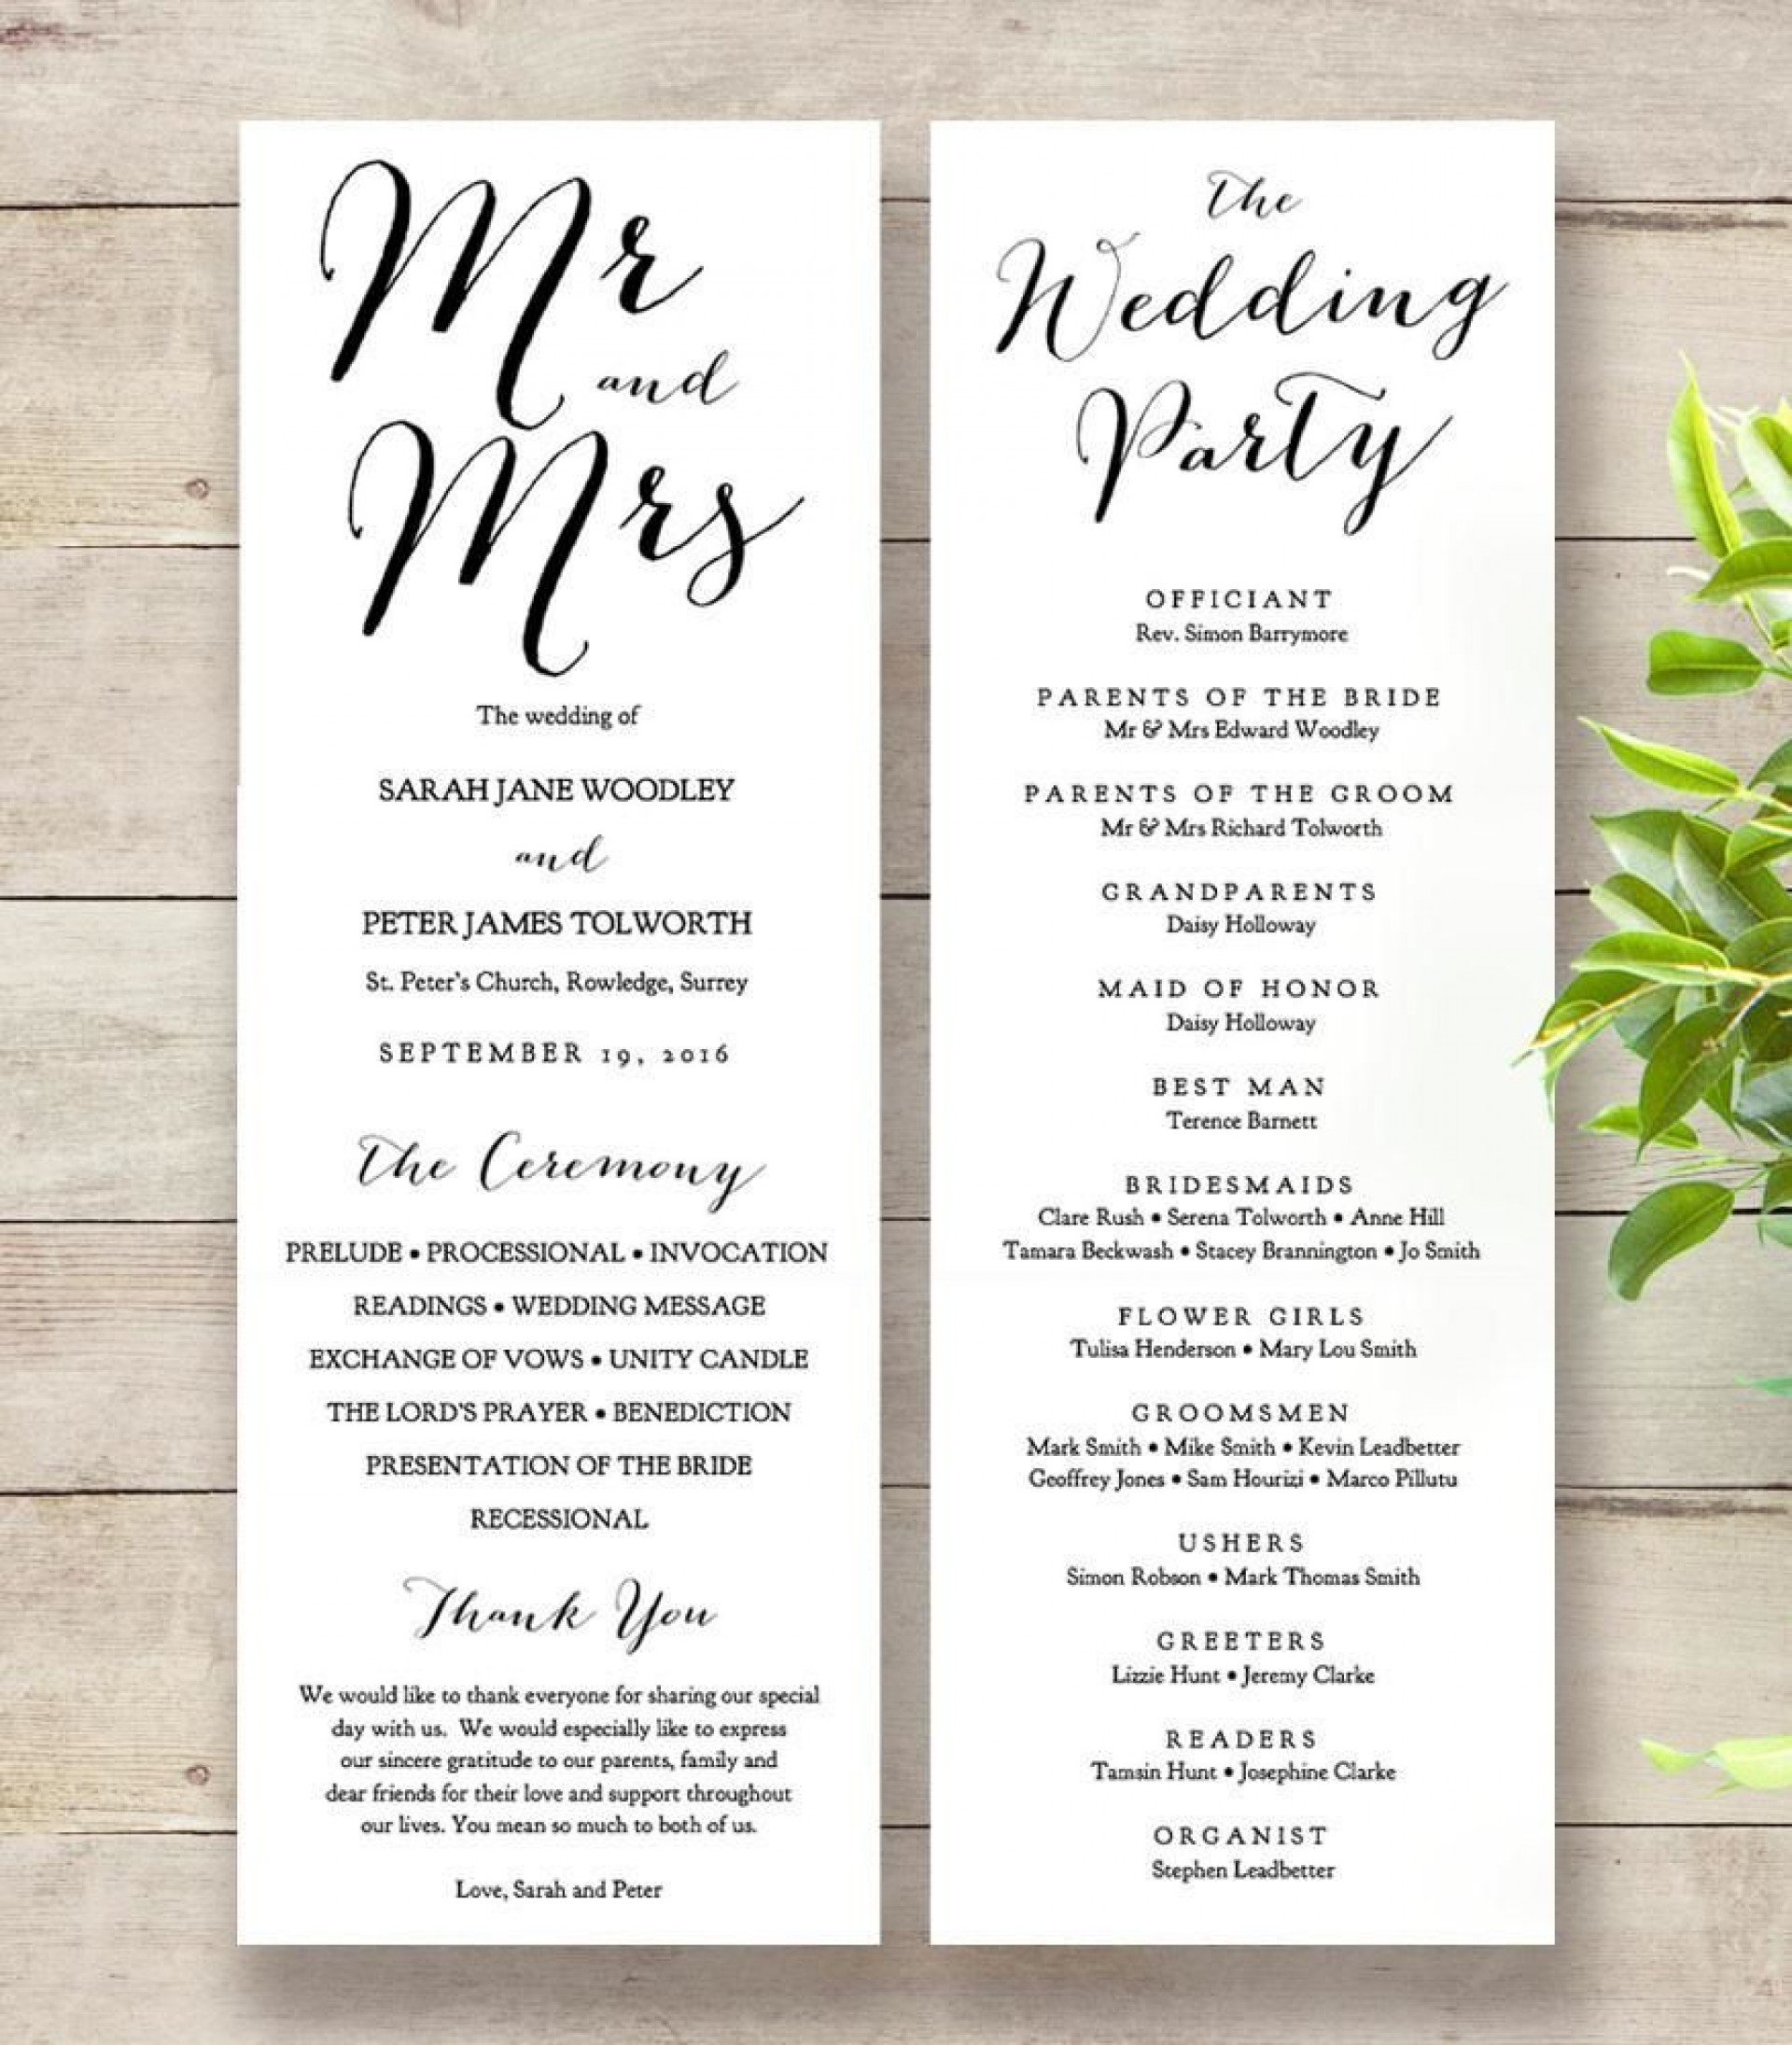 009 Unforgettable Wedding Order Of Service Template Word Sample  Free Microsoft1920